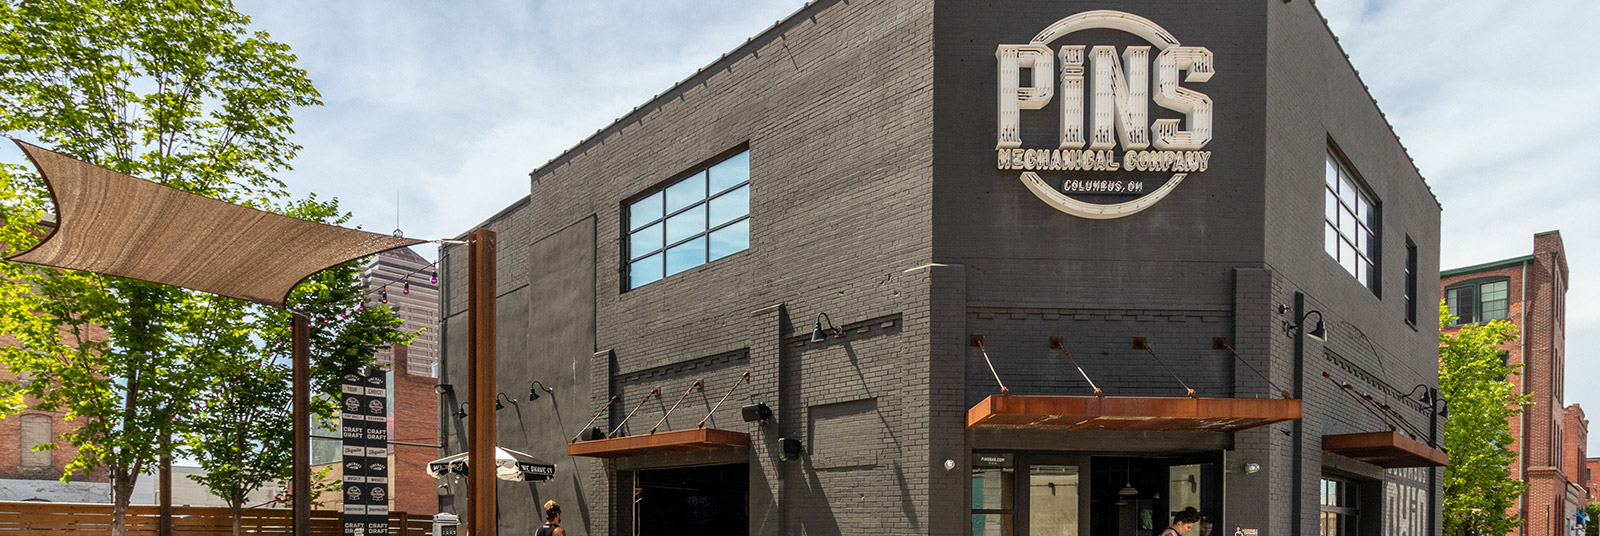 The entrance to PINS Mechanical in downtown Columbus, Ohio.